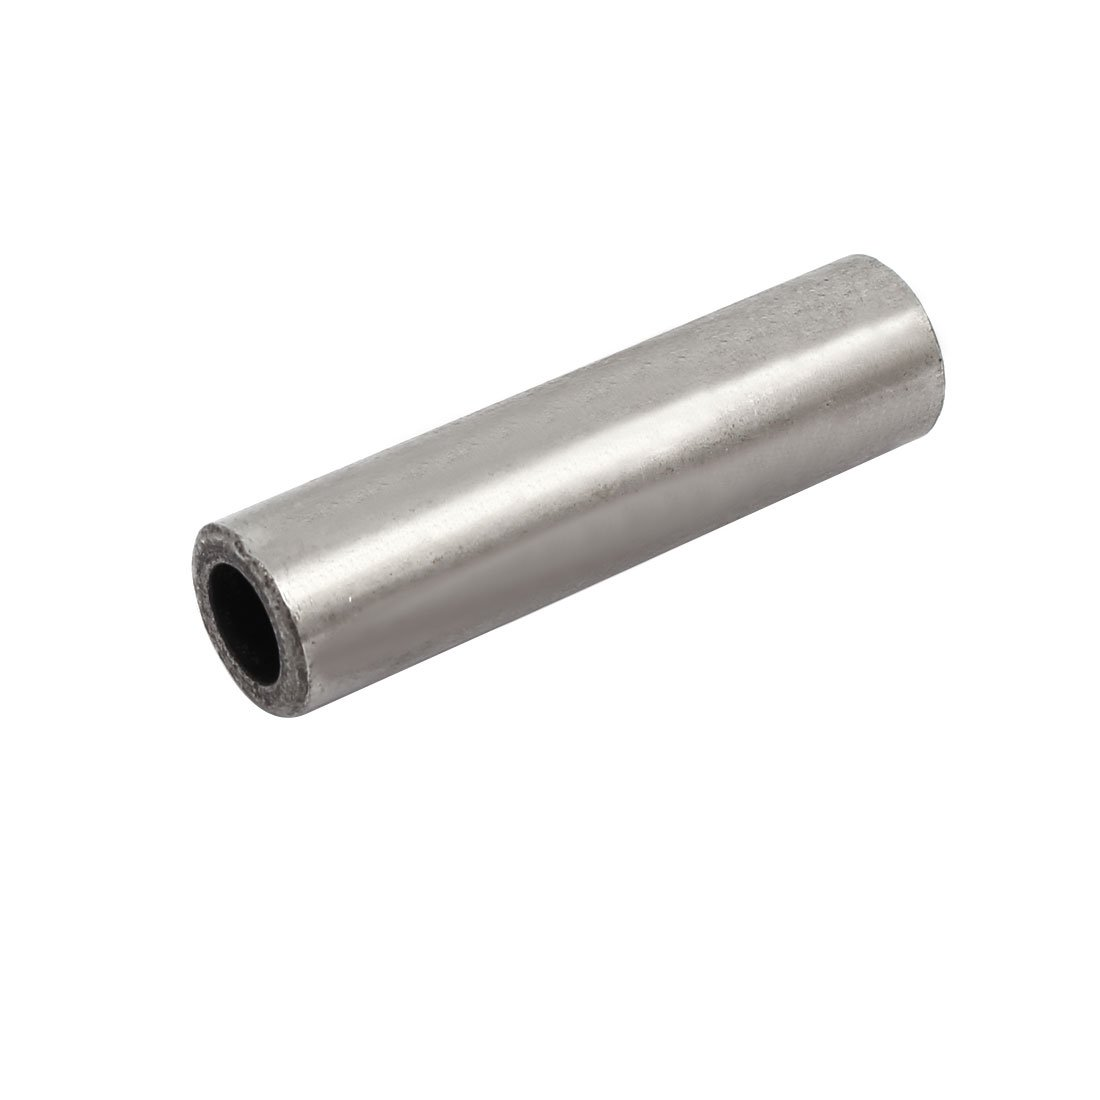 sourcingmap® 14.5mm OD 56mm Height Iron Piston Gudgeon Pin Air Compressor Accessory